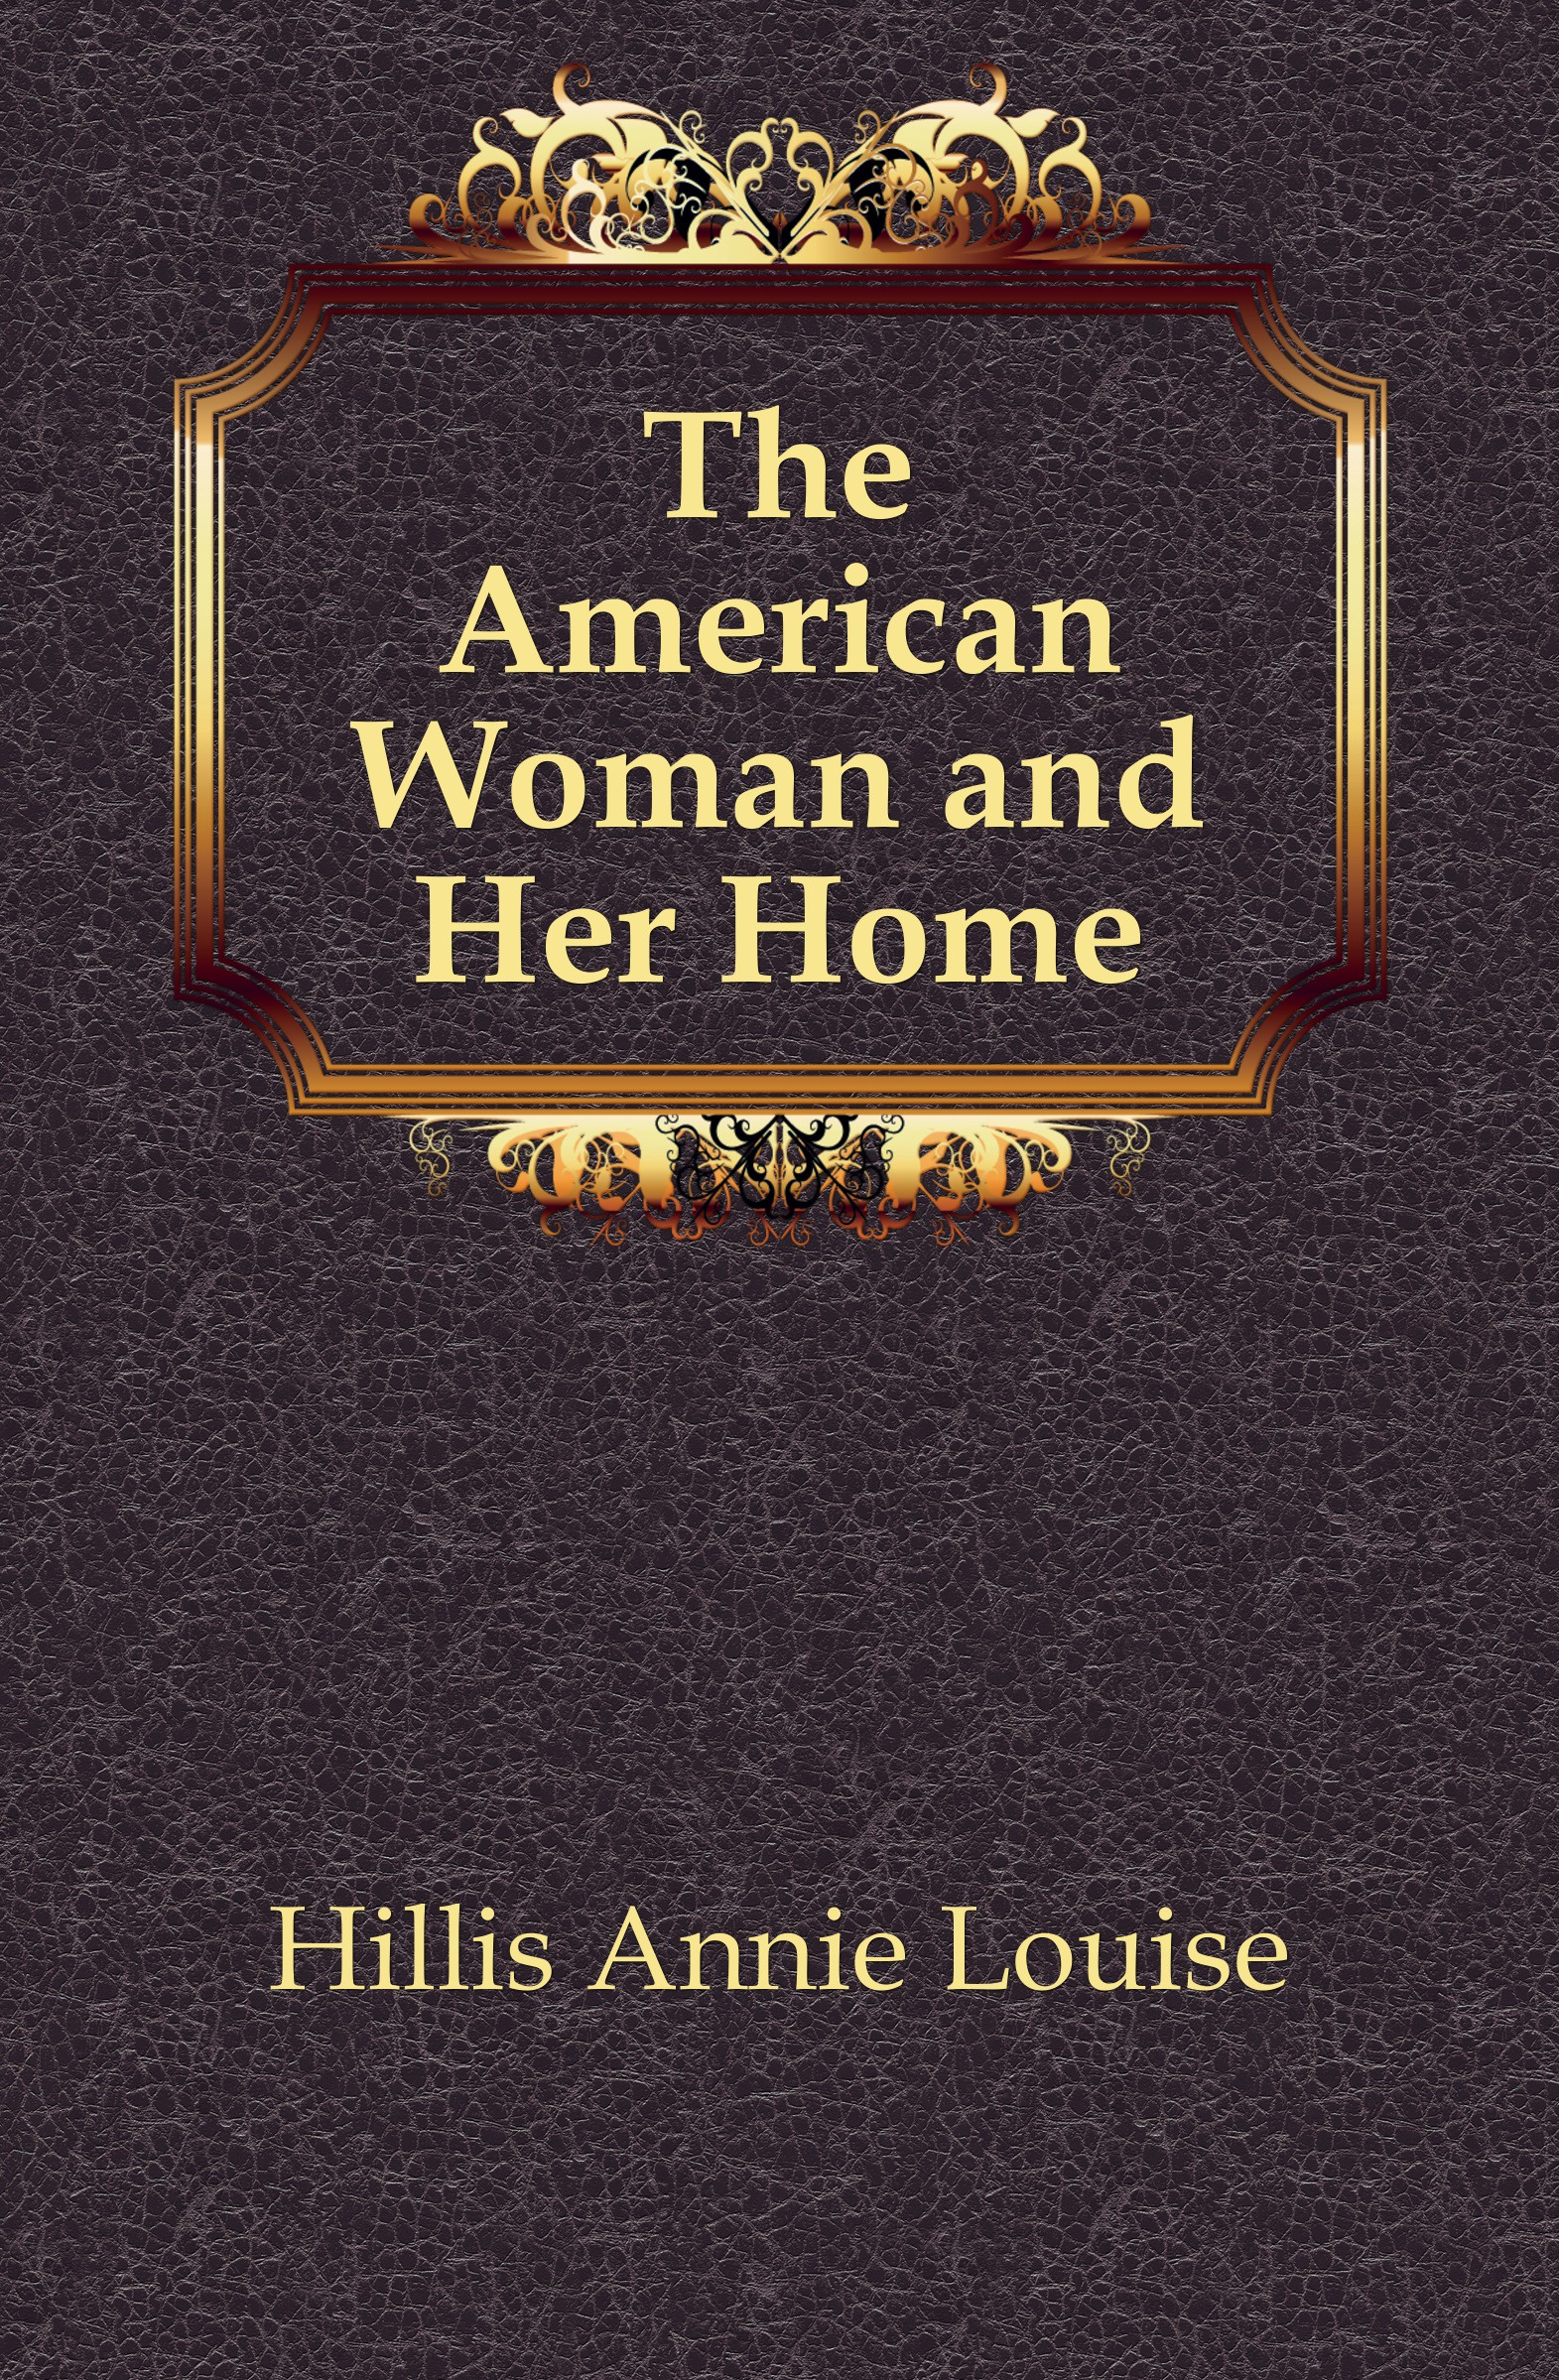 Hillis Annie Louise The American Woman and Her Home